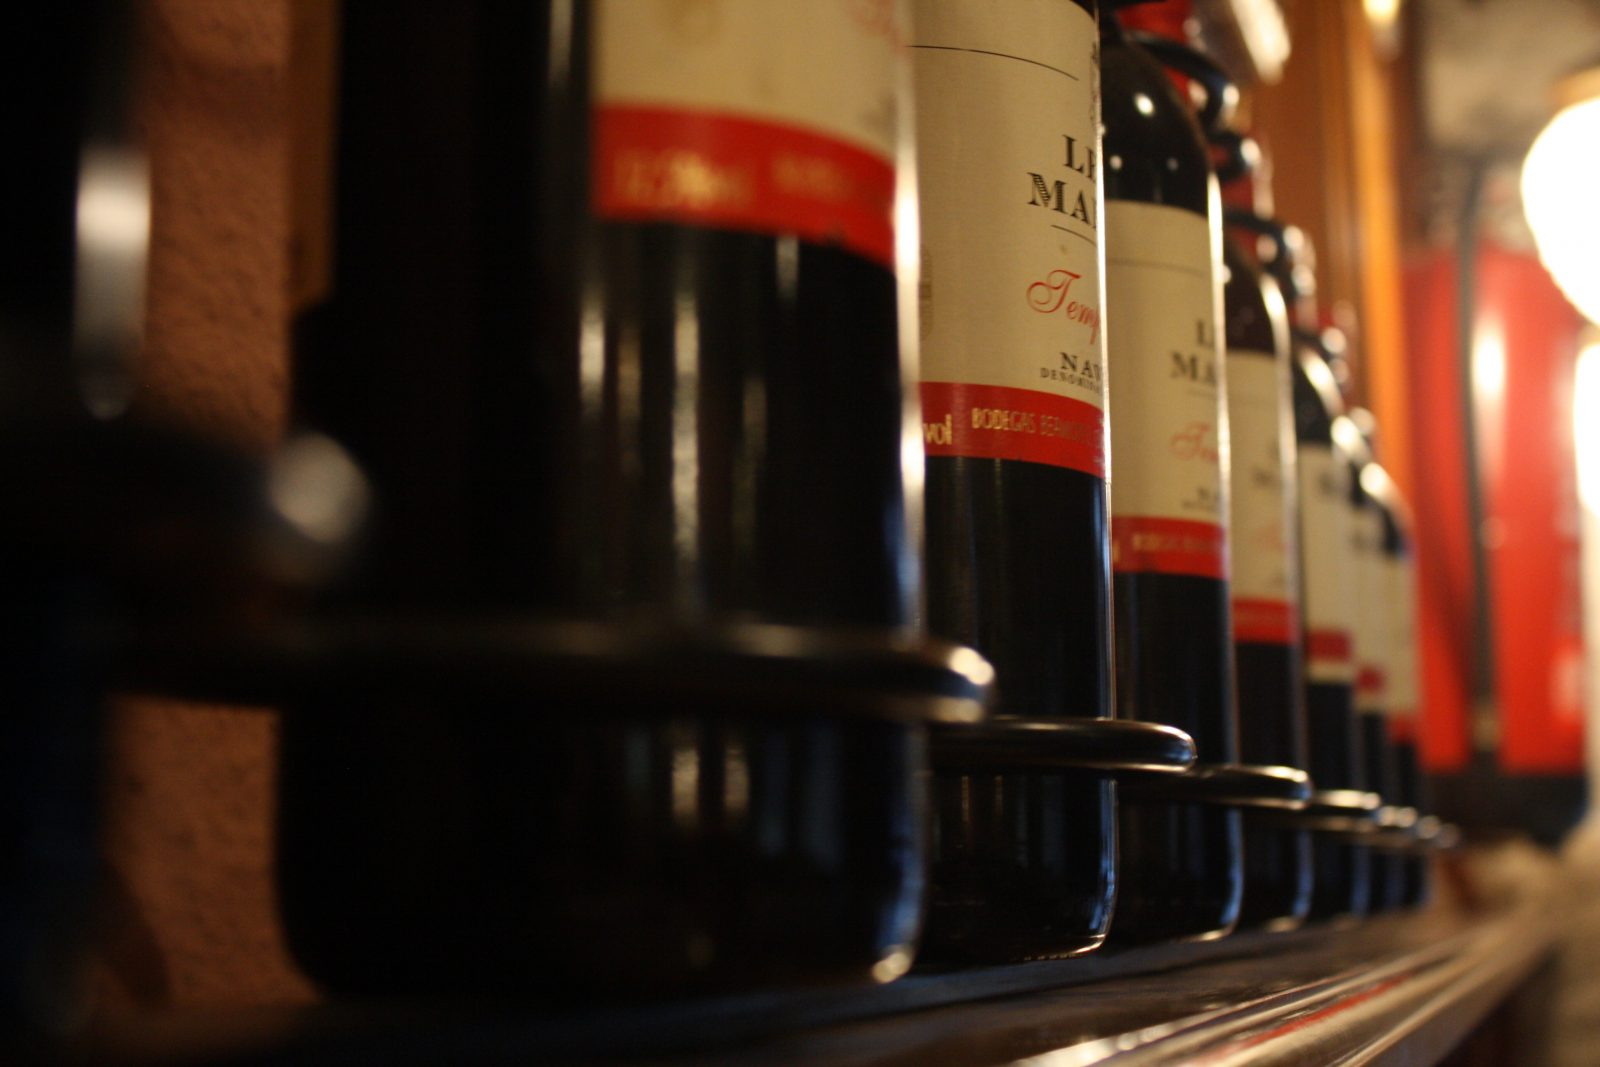 Close-up of Wine Bottles that could go in the Phiestina 15 Inch Wine Cooler